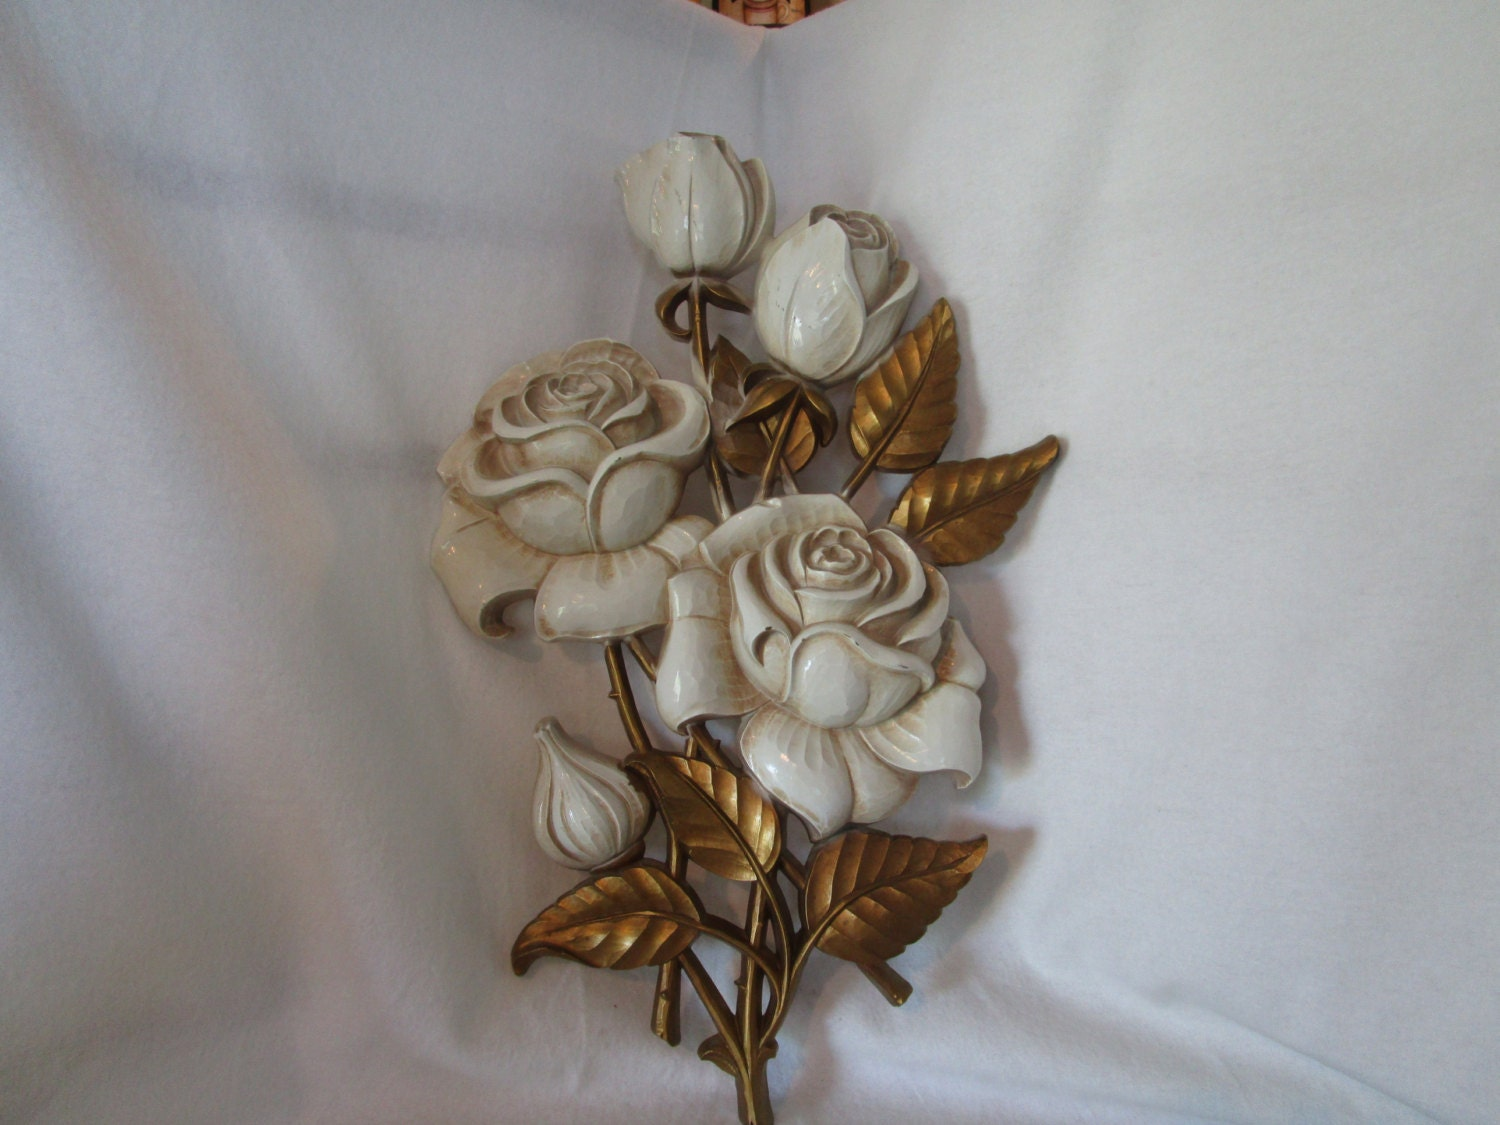 Wall decor wall hanging white rose decor rose wall decor for White wall decor